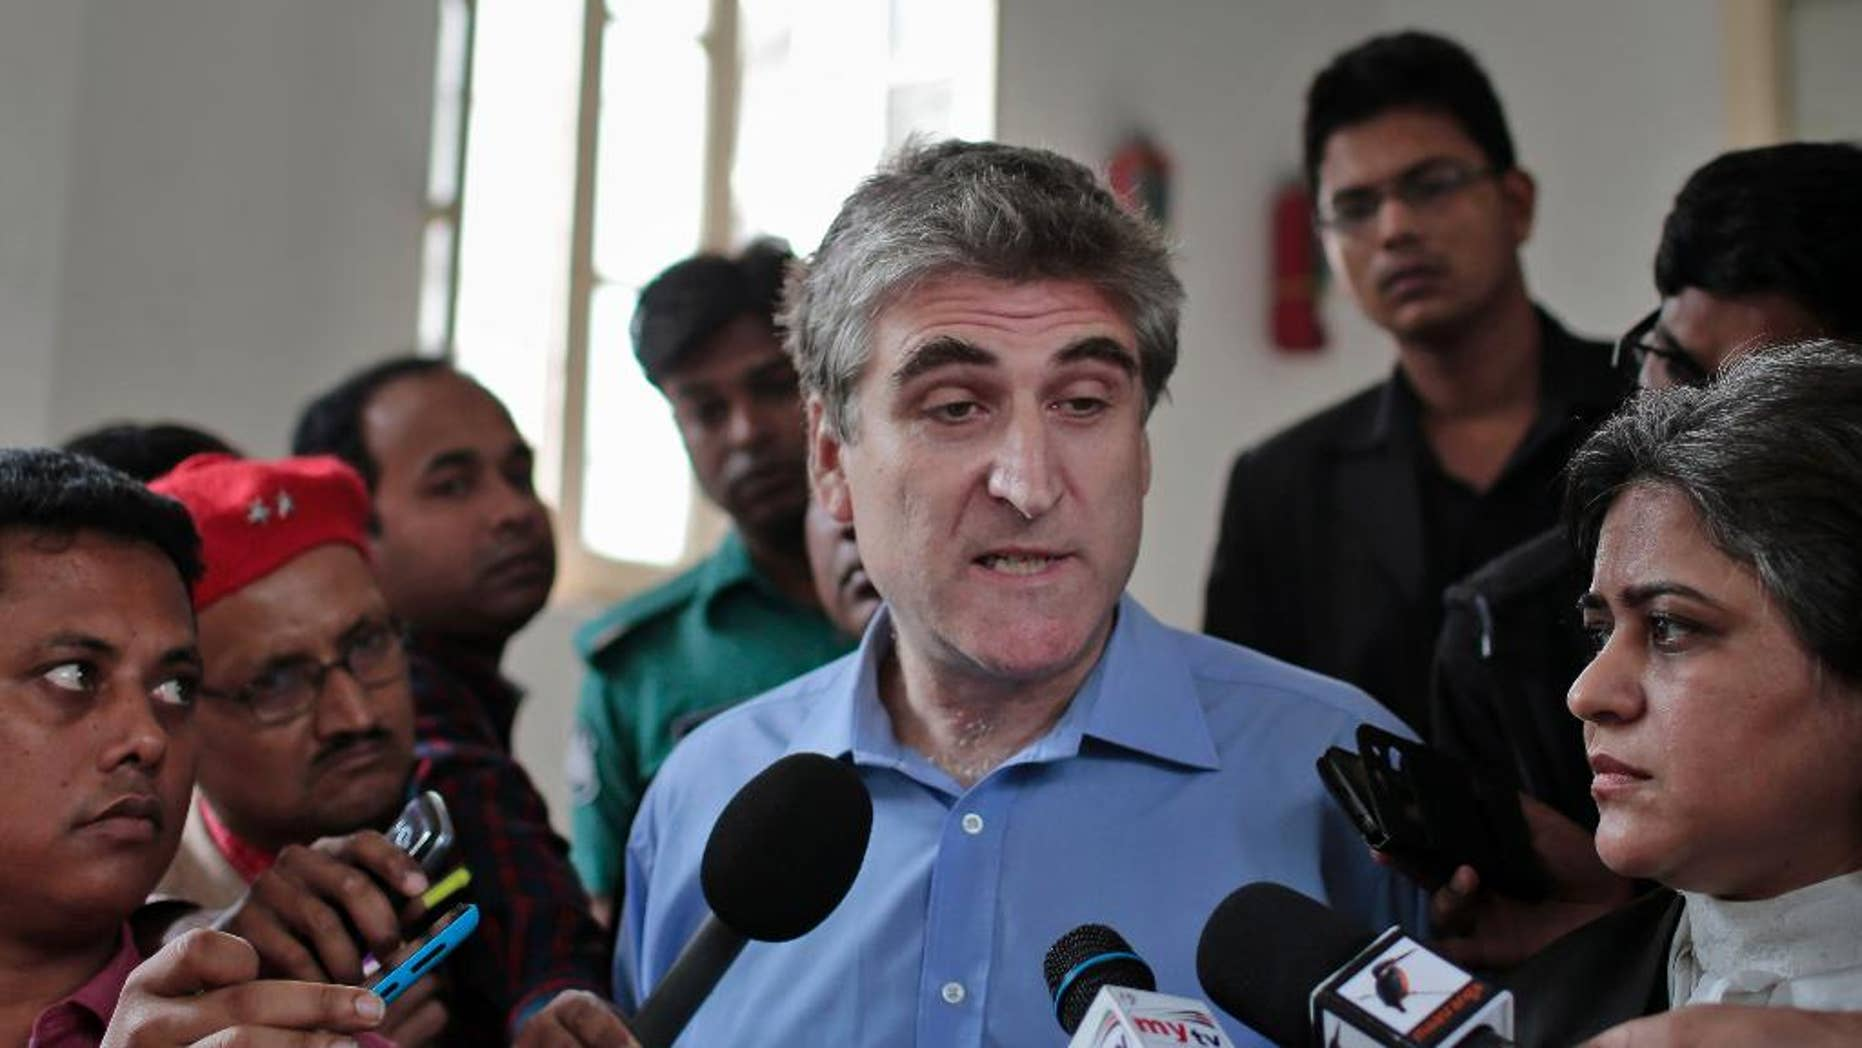 British journalist David Bergman speaks to journalists outside the International Crimes Tribunal court building in Dhaka, Bangladesh, Tuesday, Dec. 2, 2014. A court in Bangladesh dealing with war crimes committed during Bangladesh's 1971 war of independence has found Bergman guilty of contempt for questioning the official death toll of that conflict. (AP Photo/A.M. Ahad)